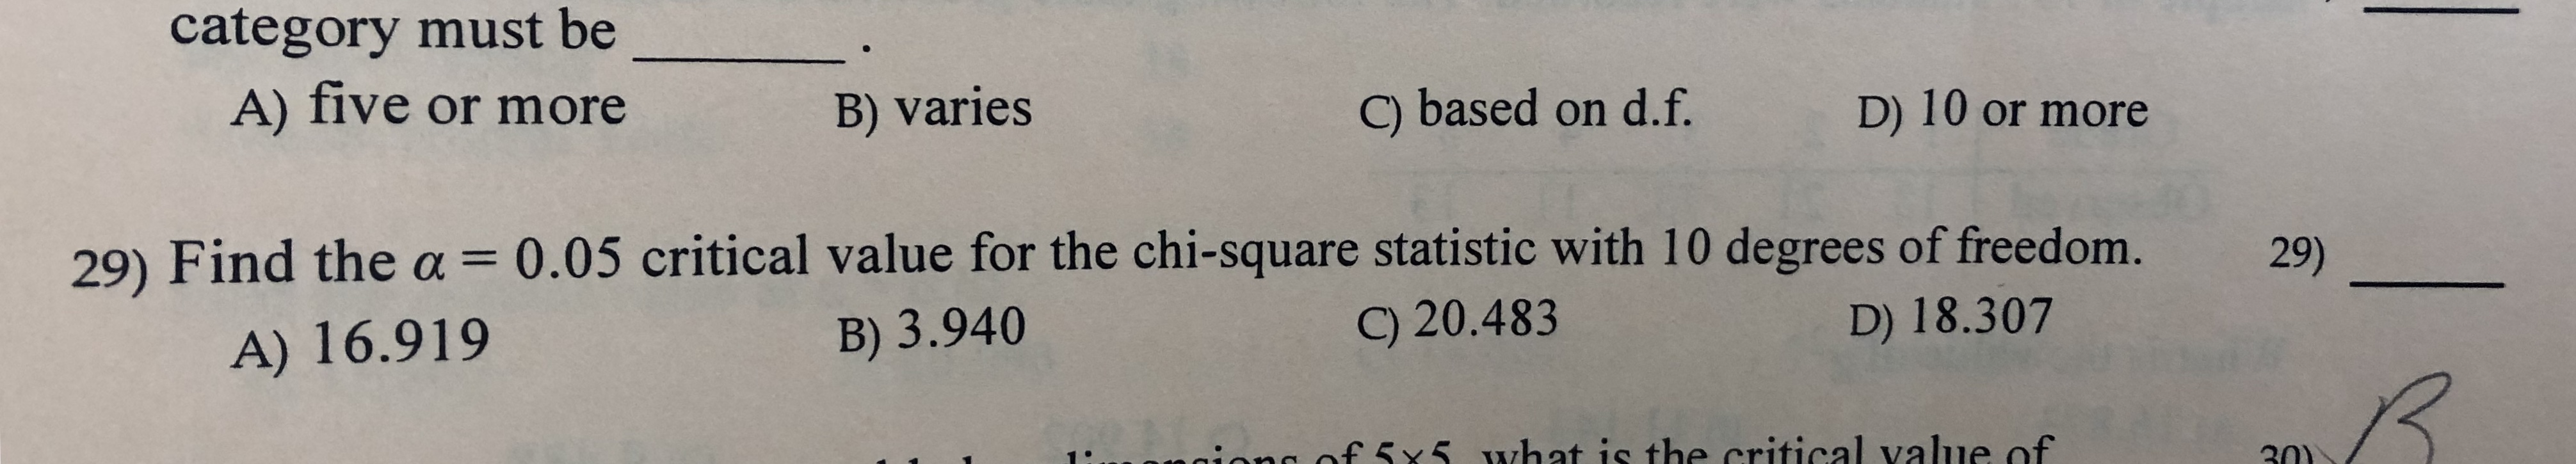 category must be A) five or more B) varies C) based on d.f. D) 10 or more 29) Find thea= 0.05 critical value for the chi-square statistic with 10 degrees of freedom. 29) 9) 20.483 A) 16.919 B) 3.940 D) 18.307 ion f 5x5 what is the critical value of 30)